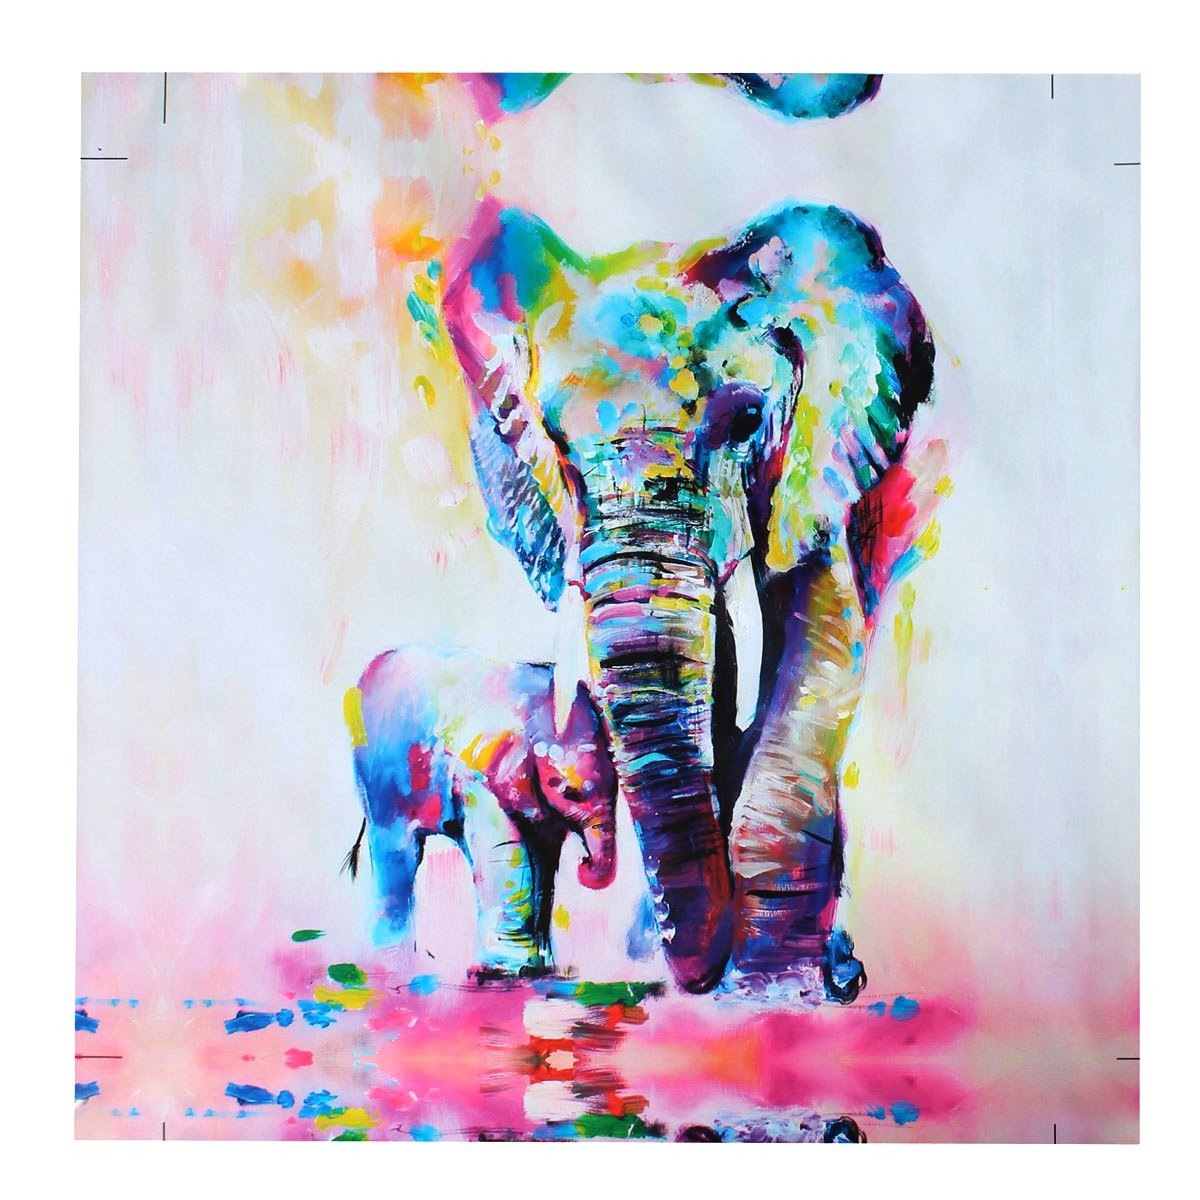 Wall art elephant - Amazon Com Mohoo 50x50cm Elephant Oil Painting Canvas Wall Art Wall Decorations Paintings For Living Room Bedroom Kitchen Office Etc Paintings